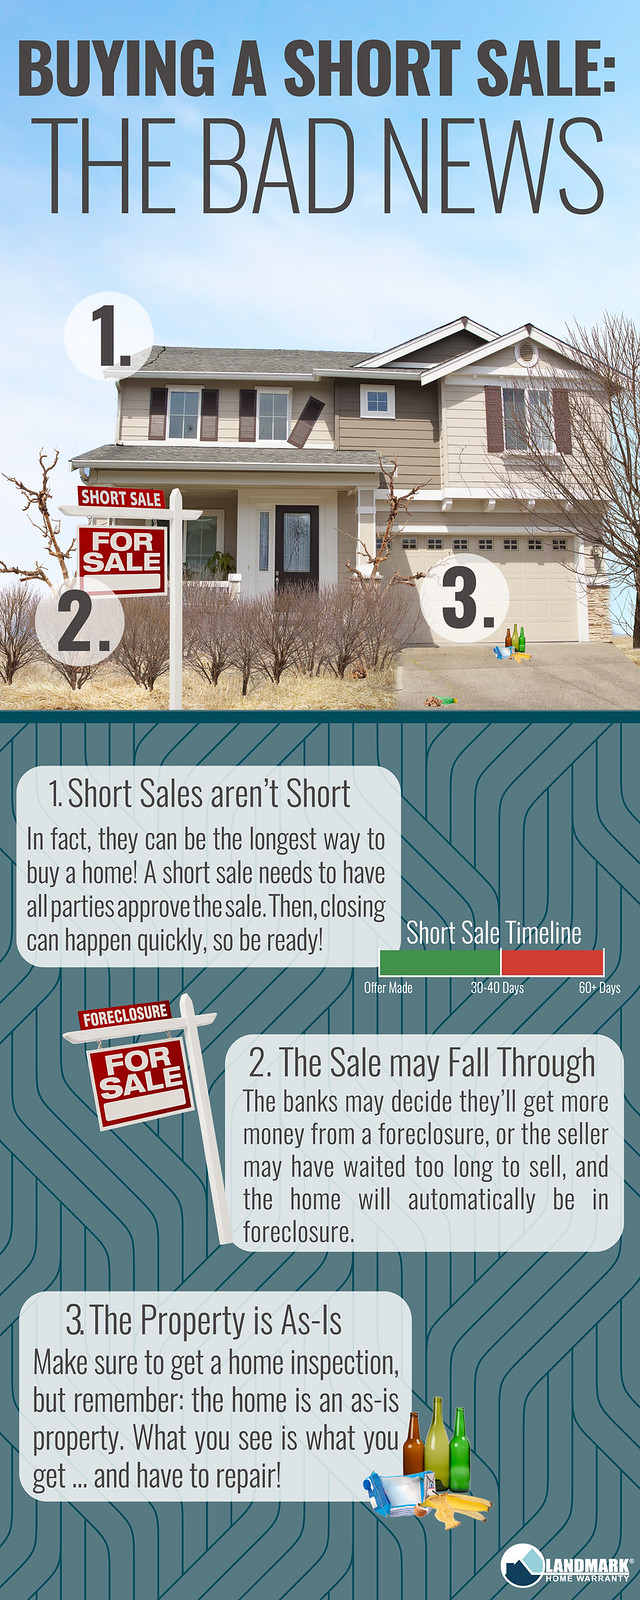 Buying a Short Sale the Bad